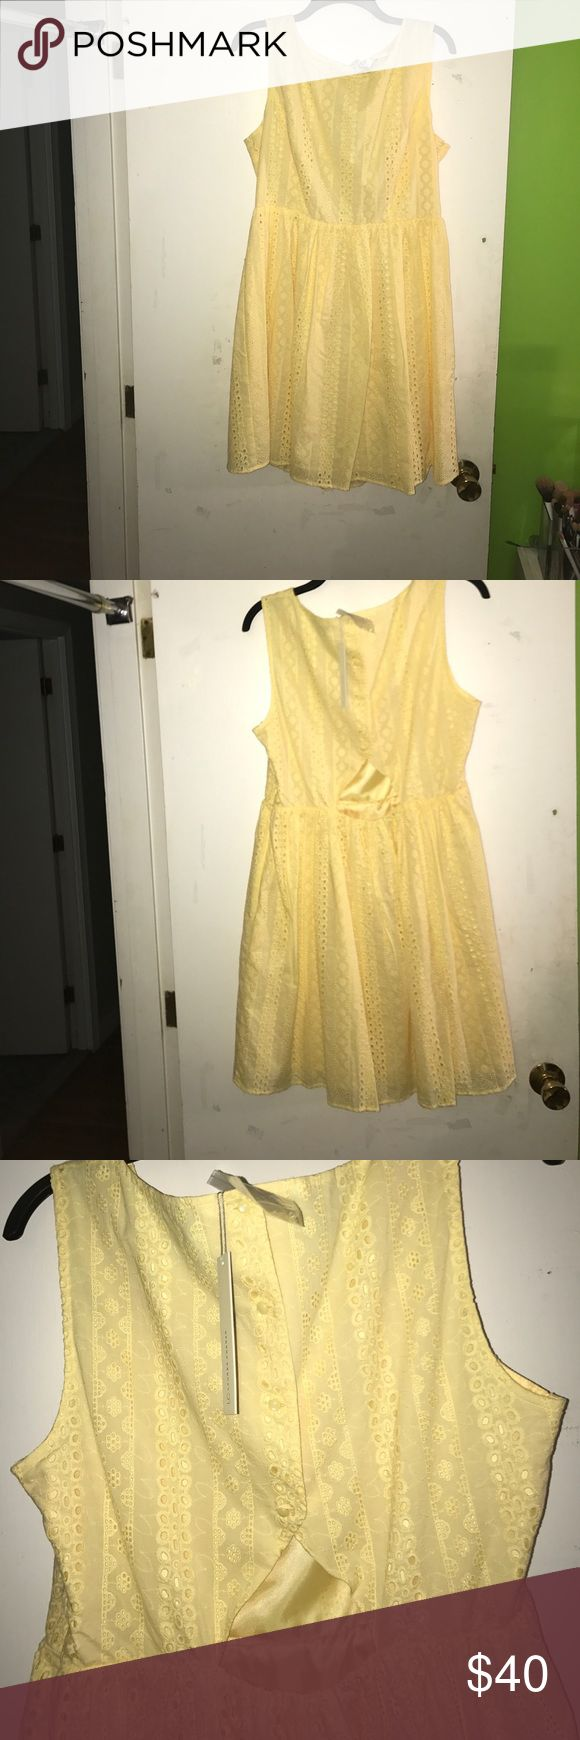 Lauren Conrad Yellow Dress Yellow dress with crochet detailing all around the dress. Small cut out in the back. Has 4 buttons and a zip up the side LC Lauren Conrad Dresses